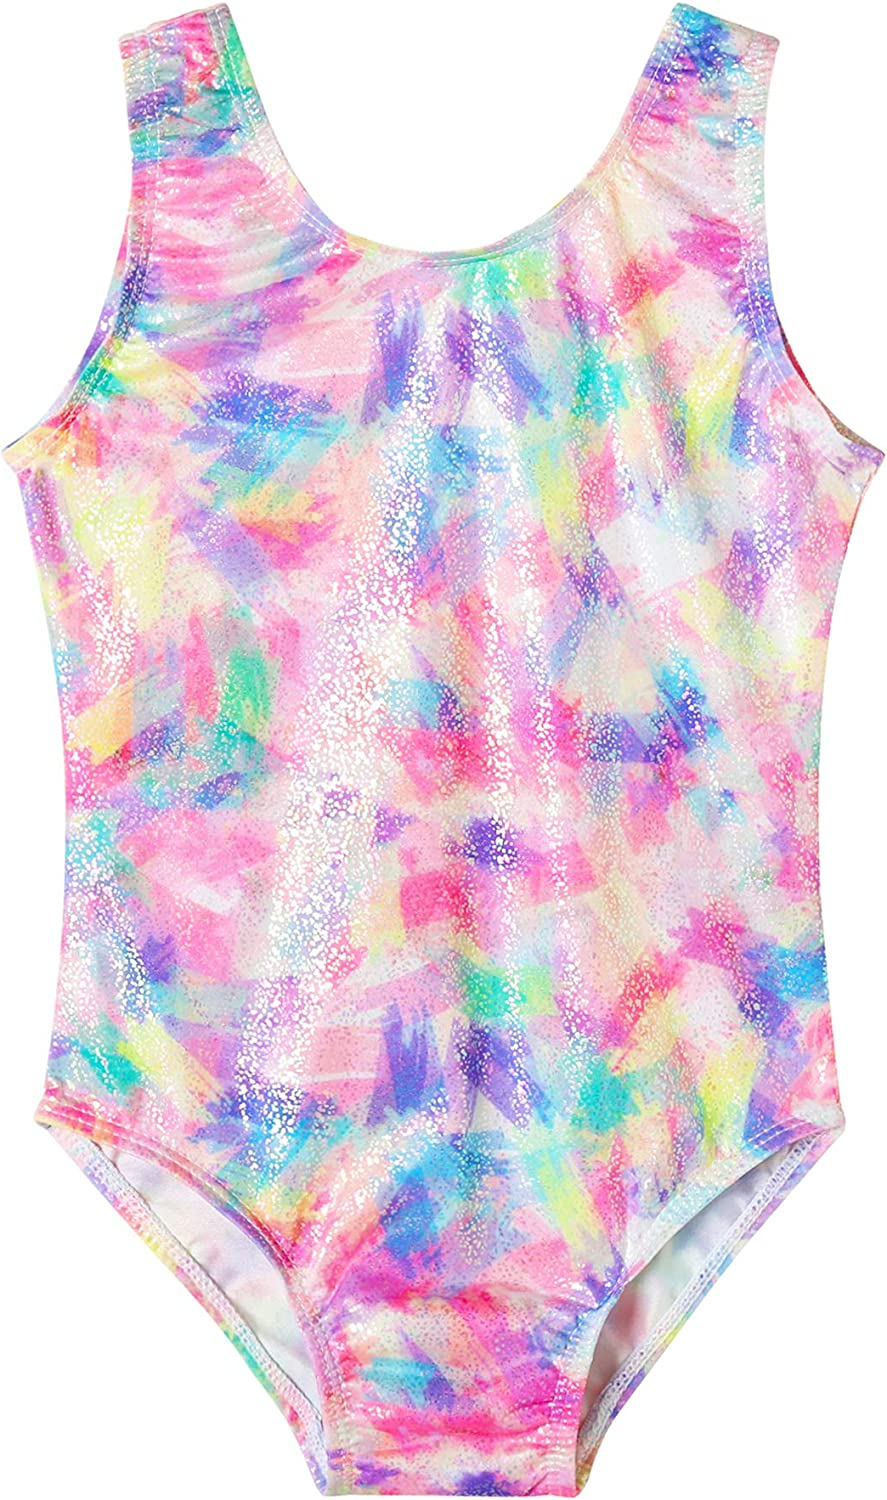 QoozZ Don't miss the campaign Little New product!! Girls' One-piece Dancing Athlet Gymnastics Tumbling